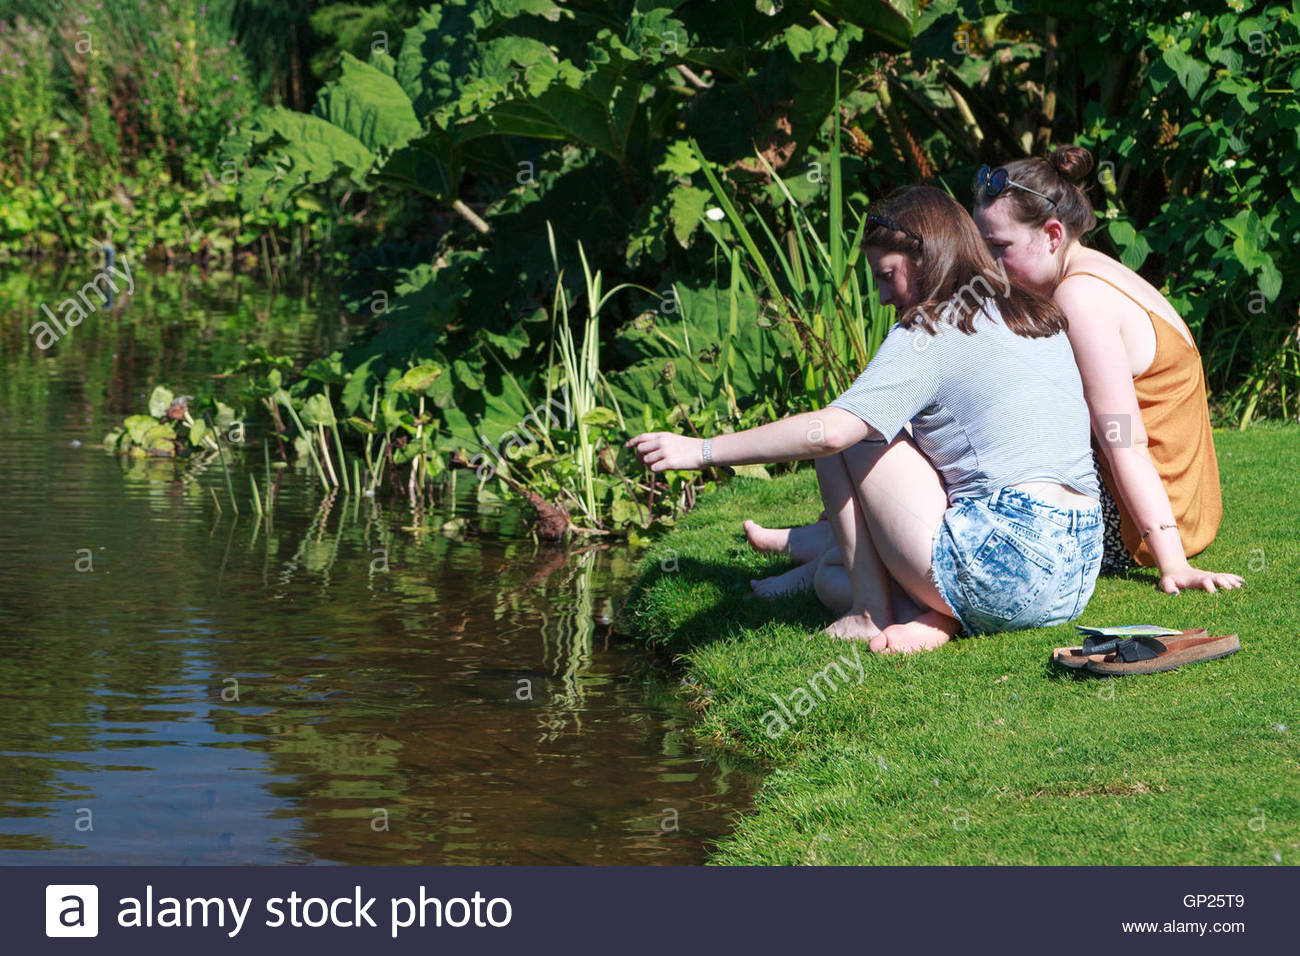 On a hot summer day in an English garden two young women are sat at the edge of a pond deep in conversation. - Stock Image